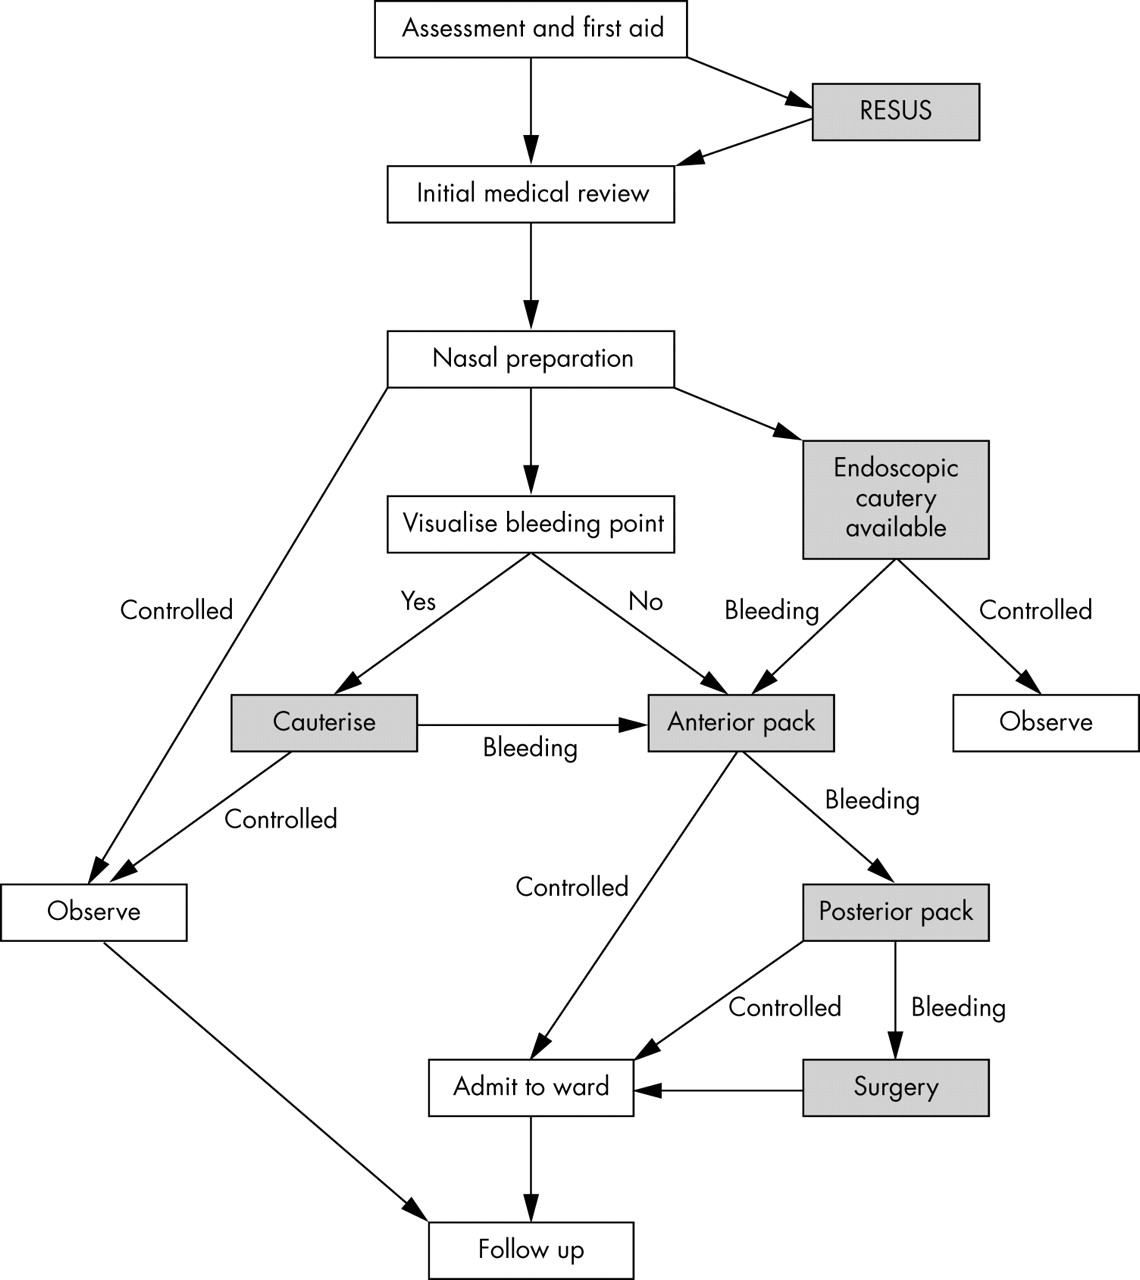 Epistaxis: an update on current management | Postgraduate Medical ...